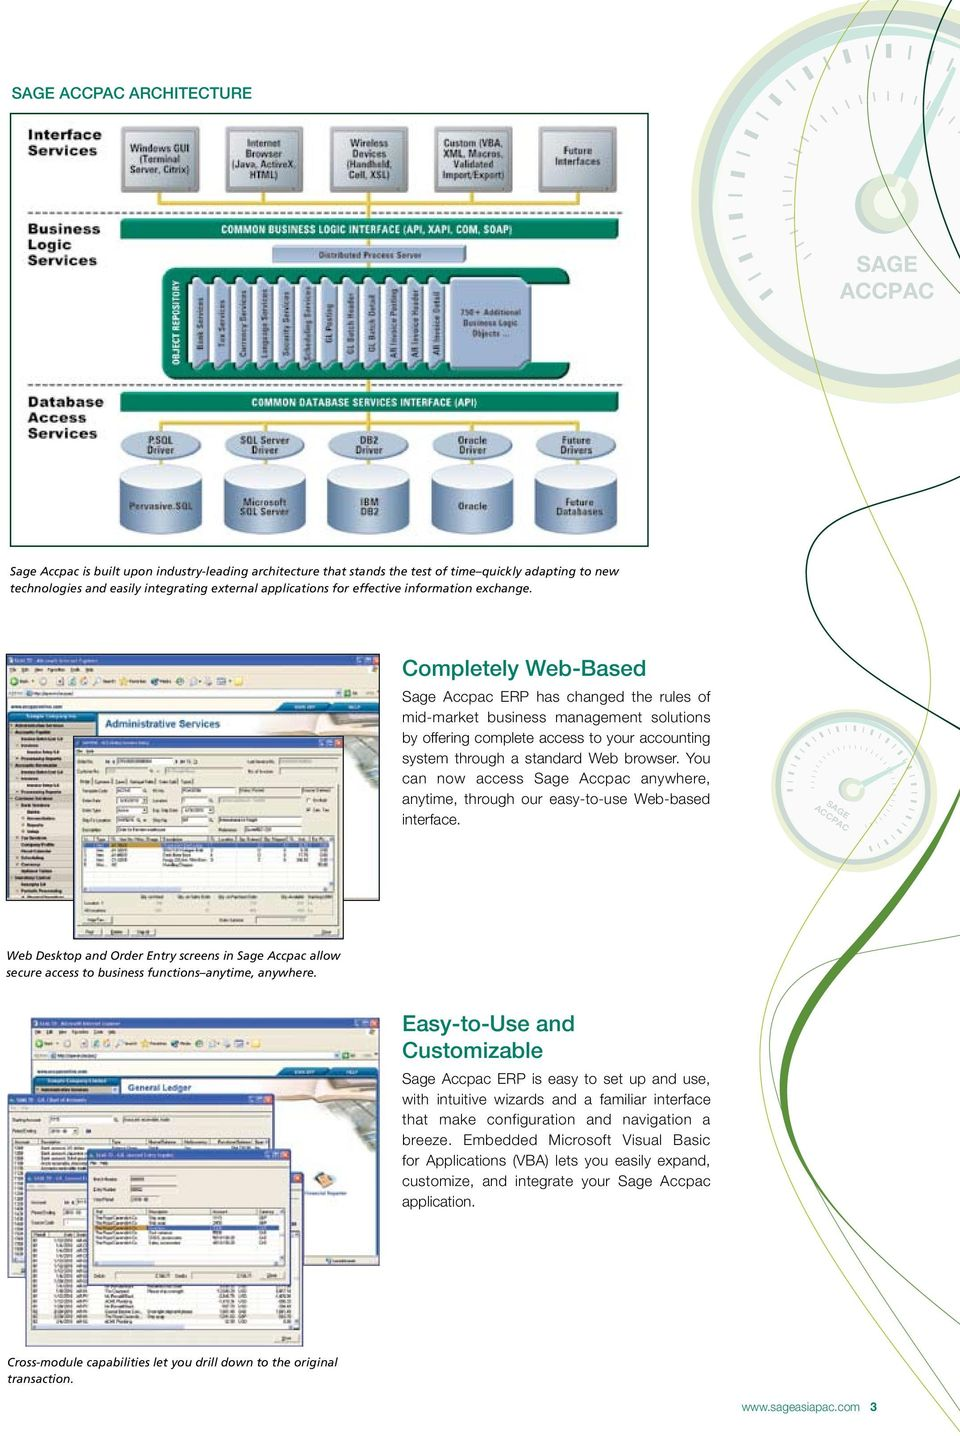 Completely Web-Based Sage Accpac ERP has changed the rules of mid-market business management solutions by offering complete access to your accounting system through a standard Web browser.